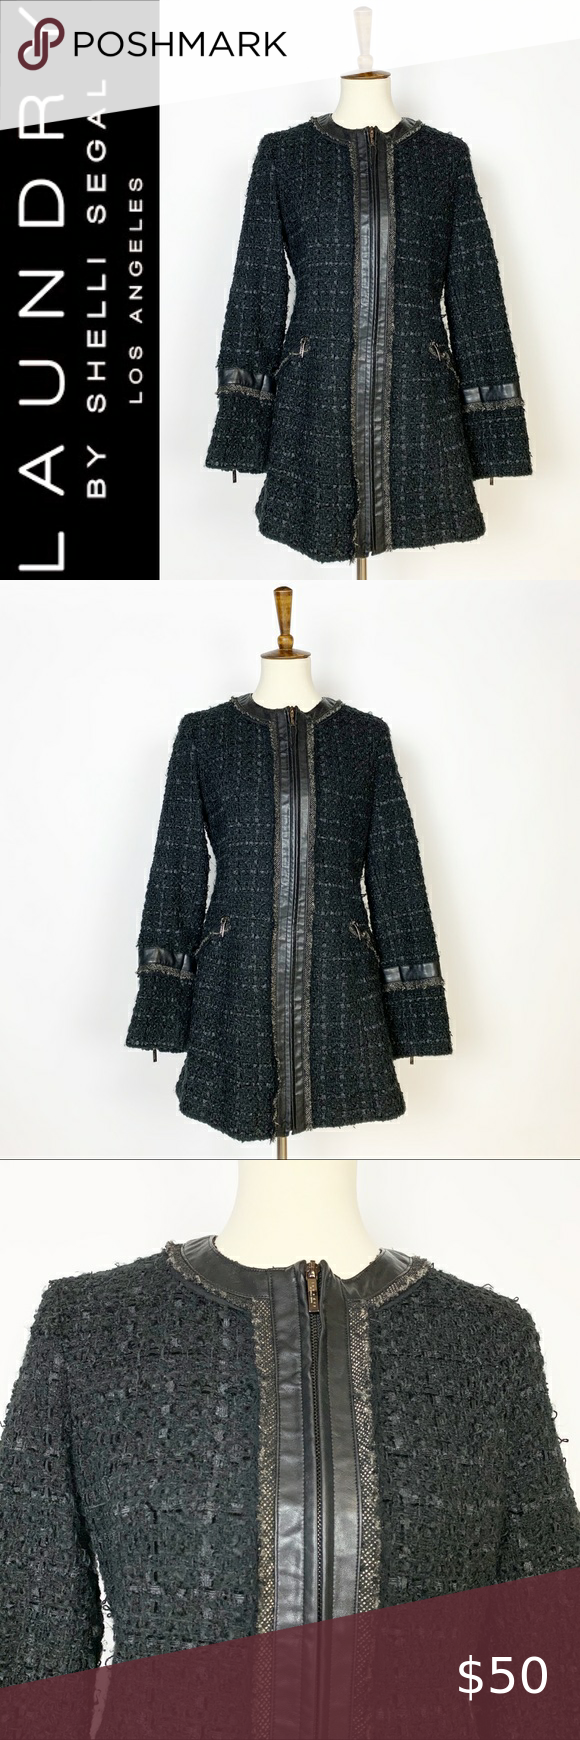 """Laundry by Shelli Segal Ribbon Trim Tweed Coat MD Measurements Approximate Laying Flat-   ▫️Length: 31""""  ▫️Pit to Pit: 19""""  ▫️Size: Medium   ▫️Condition: Excellent Preowned Condition   ▫️Materials: See Photos  ▫️Color: Black Skimmer   ▫️Style: Tweed, ZIP Front , Silky Smooth Lining   ◻️Inventory #0706  FAST SHIPPING / SMOKE FREE HOME Laundry By Shelli Segal Jackets & Coats"""